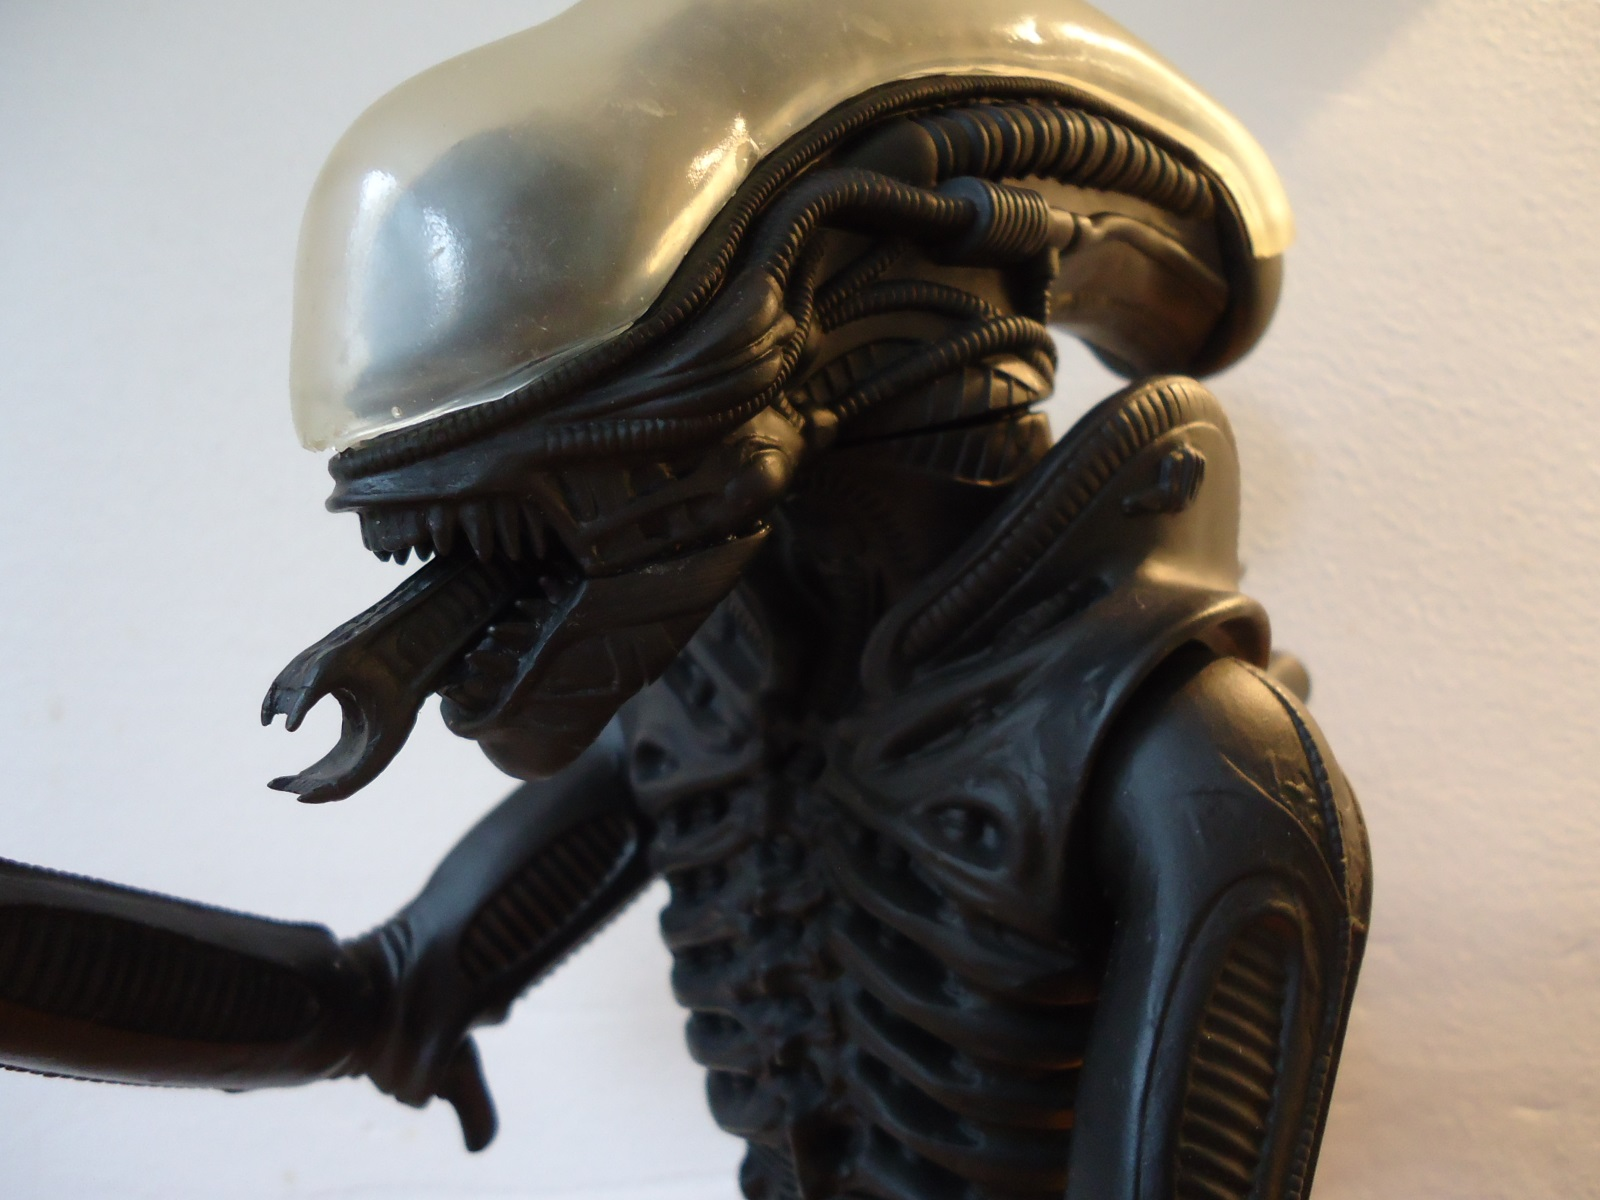 Close up of the had of the 1991 Halcyon ALIEN model kit.